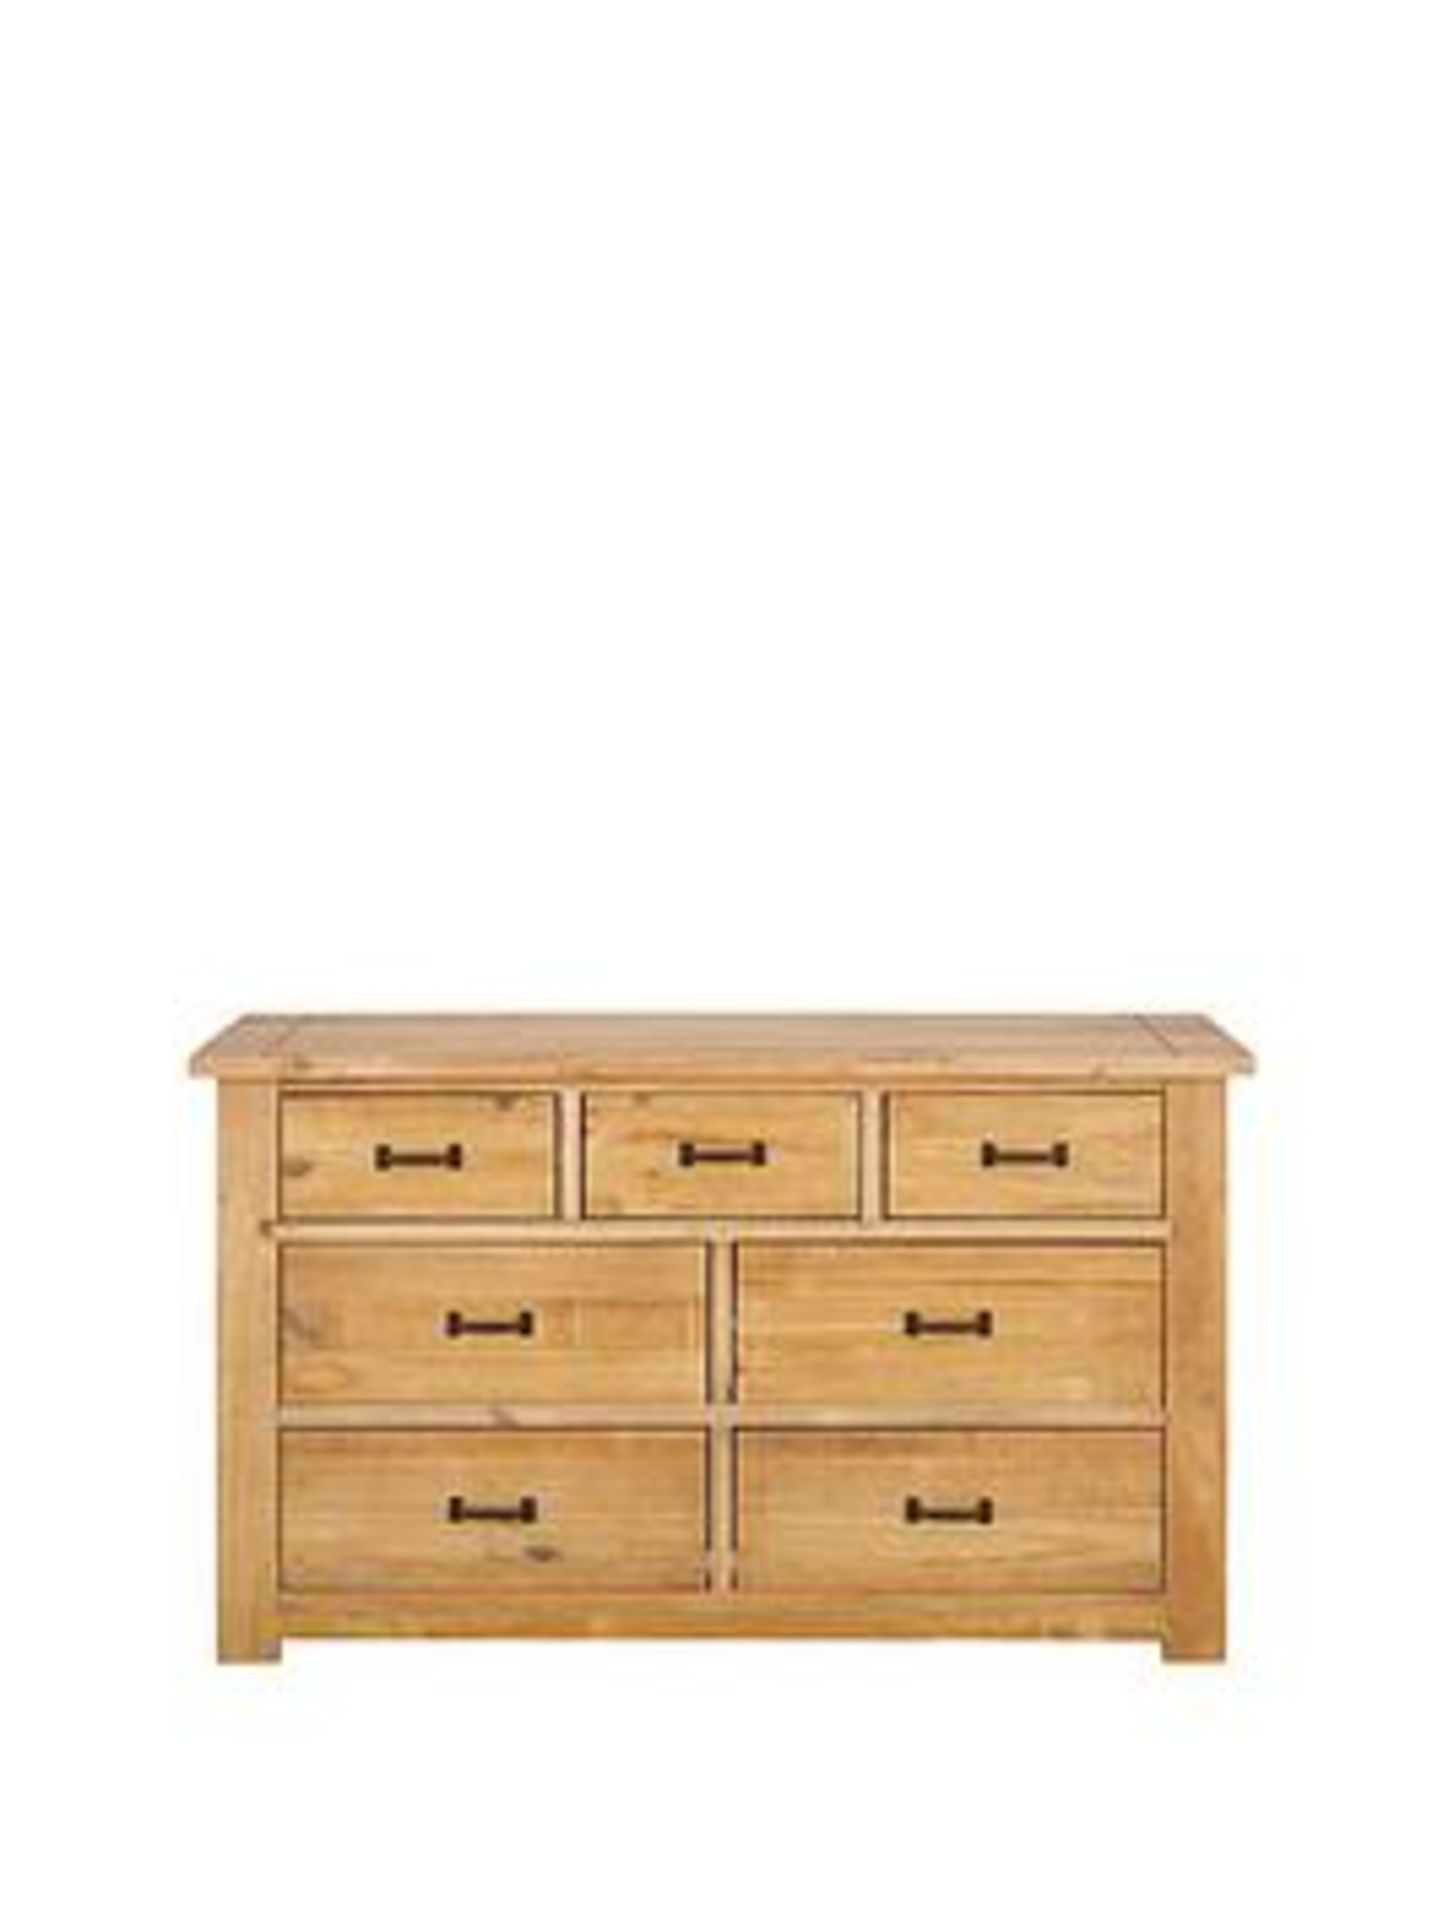 Lot 63 - Boxed Item Albion 7 Drawers Chest [Pine] 77X125X40Cm rrp, £474.0